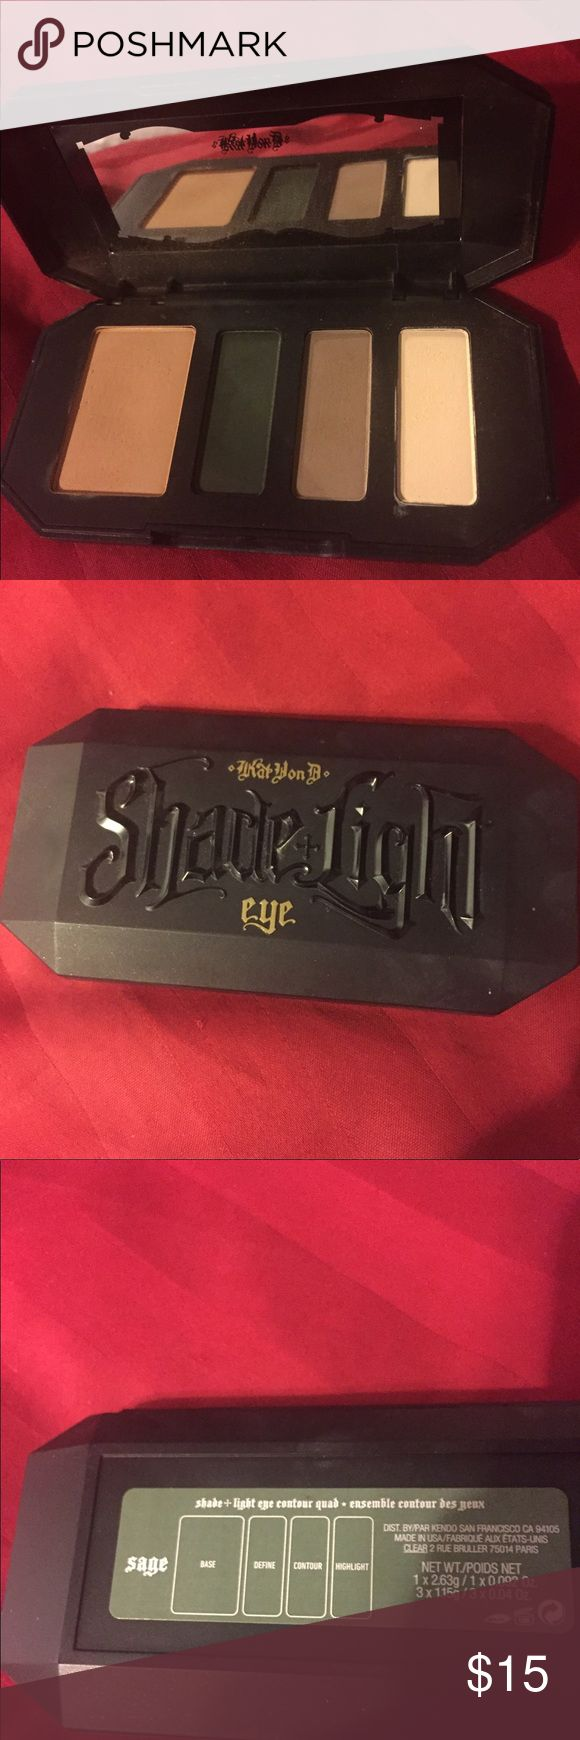 Kat Von D shade and light eye contour quad in sage Used once. No box. Bought from sephora Kat Von D Makeup Eyeshadow